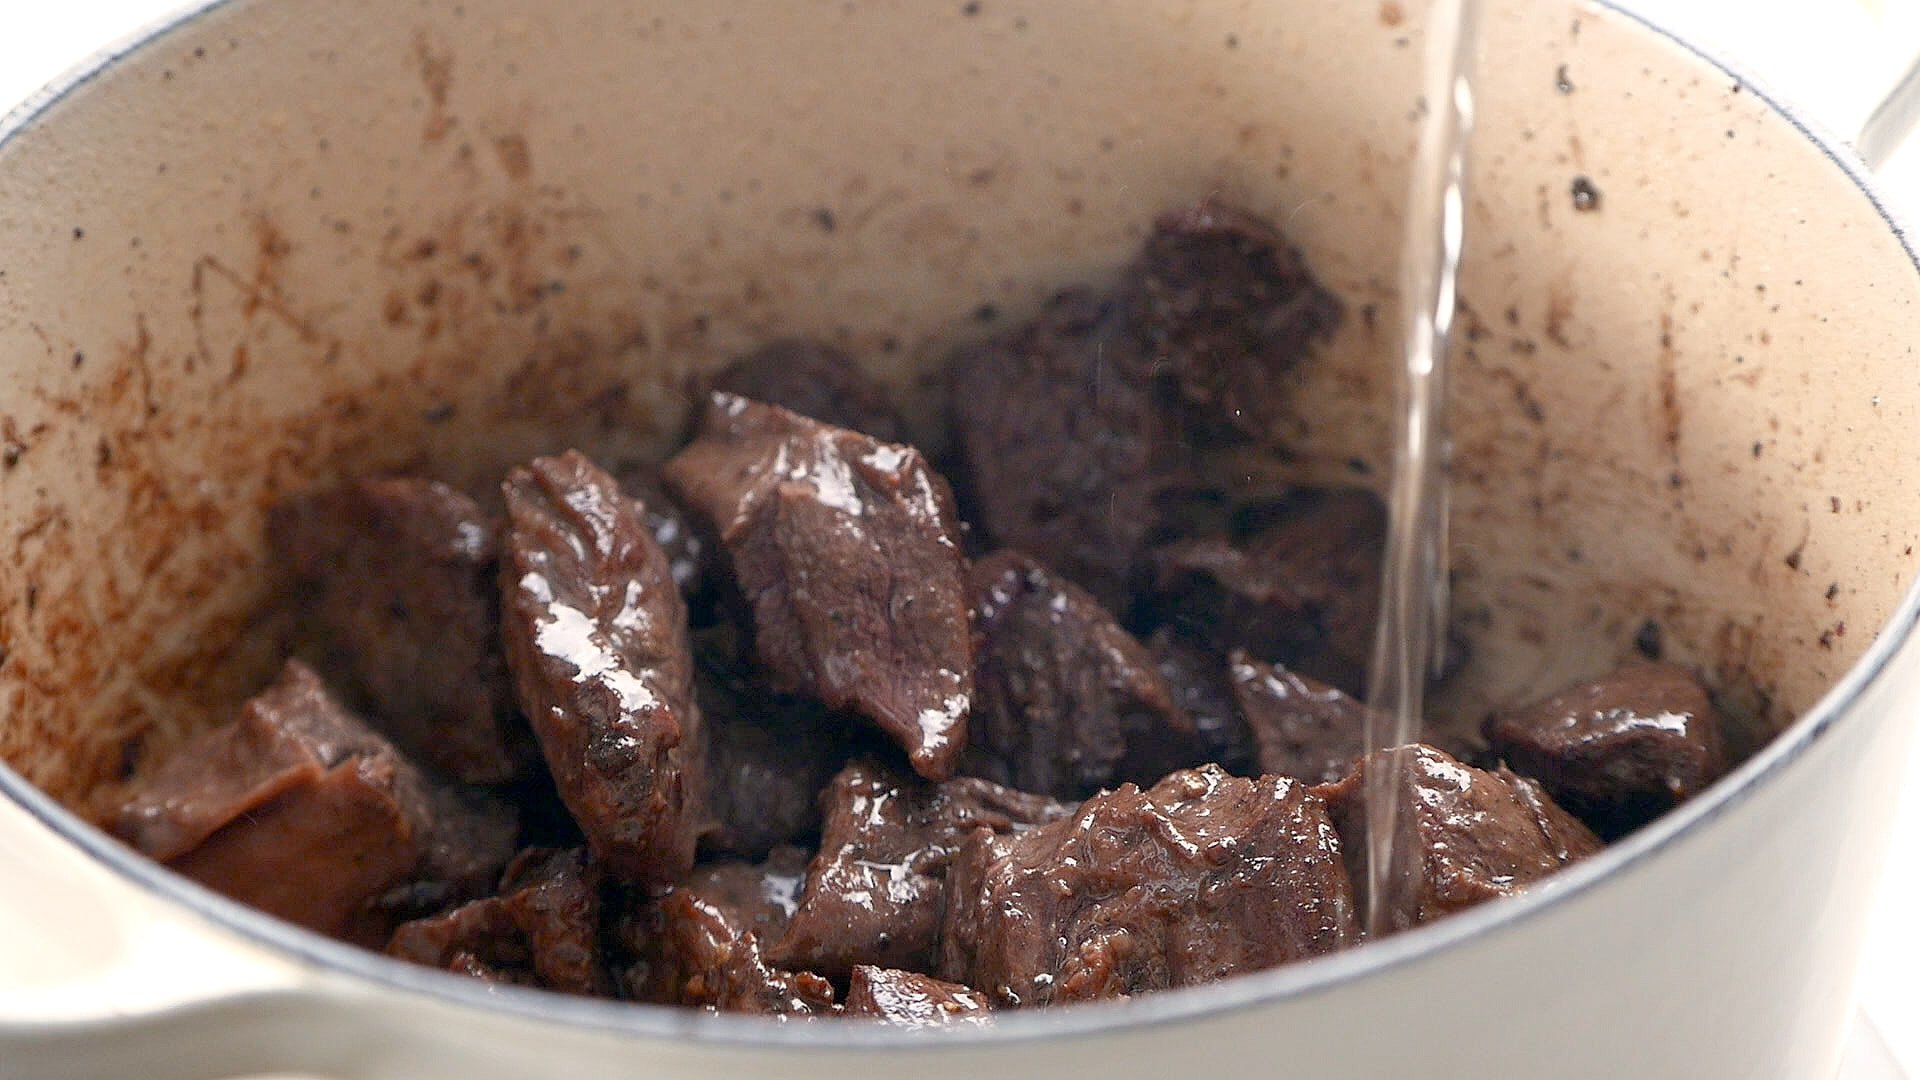 Adding water to browned meat